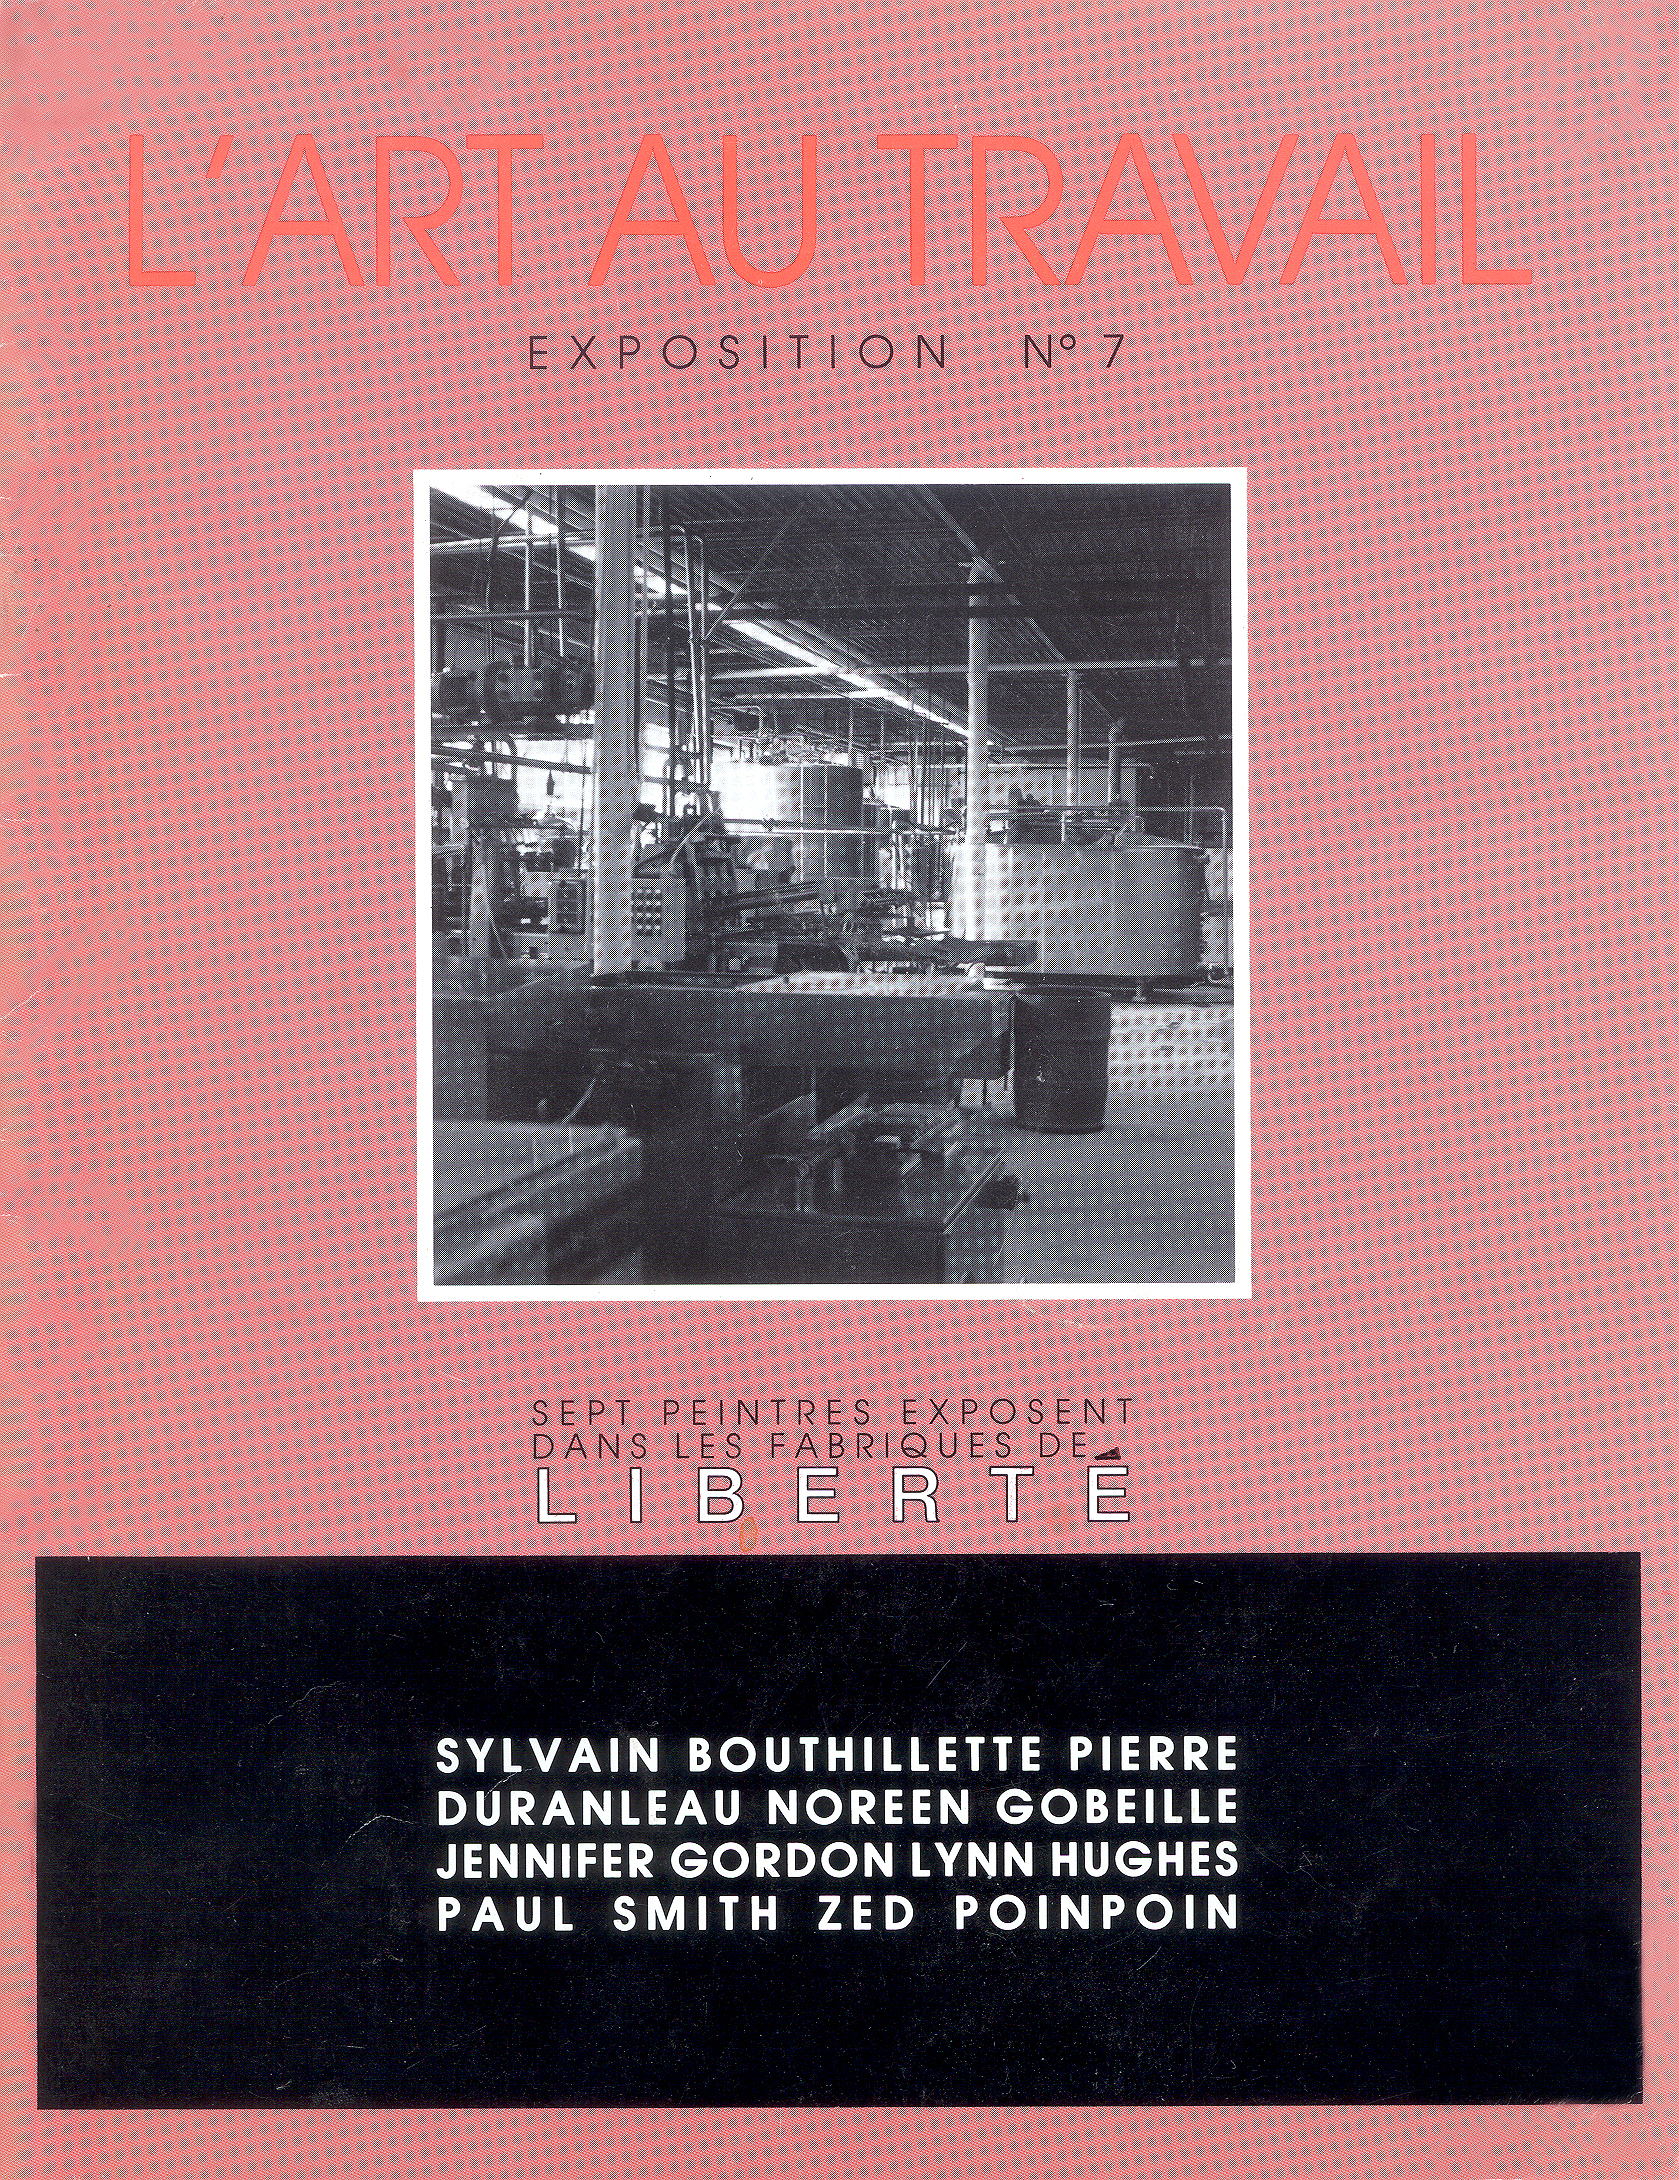 Exhibition - Catalogue - Expostion 1987